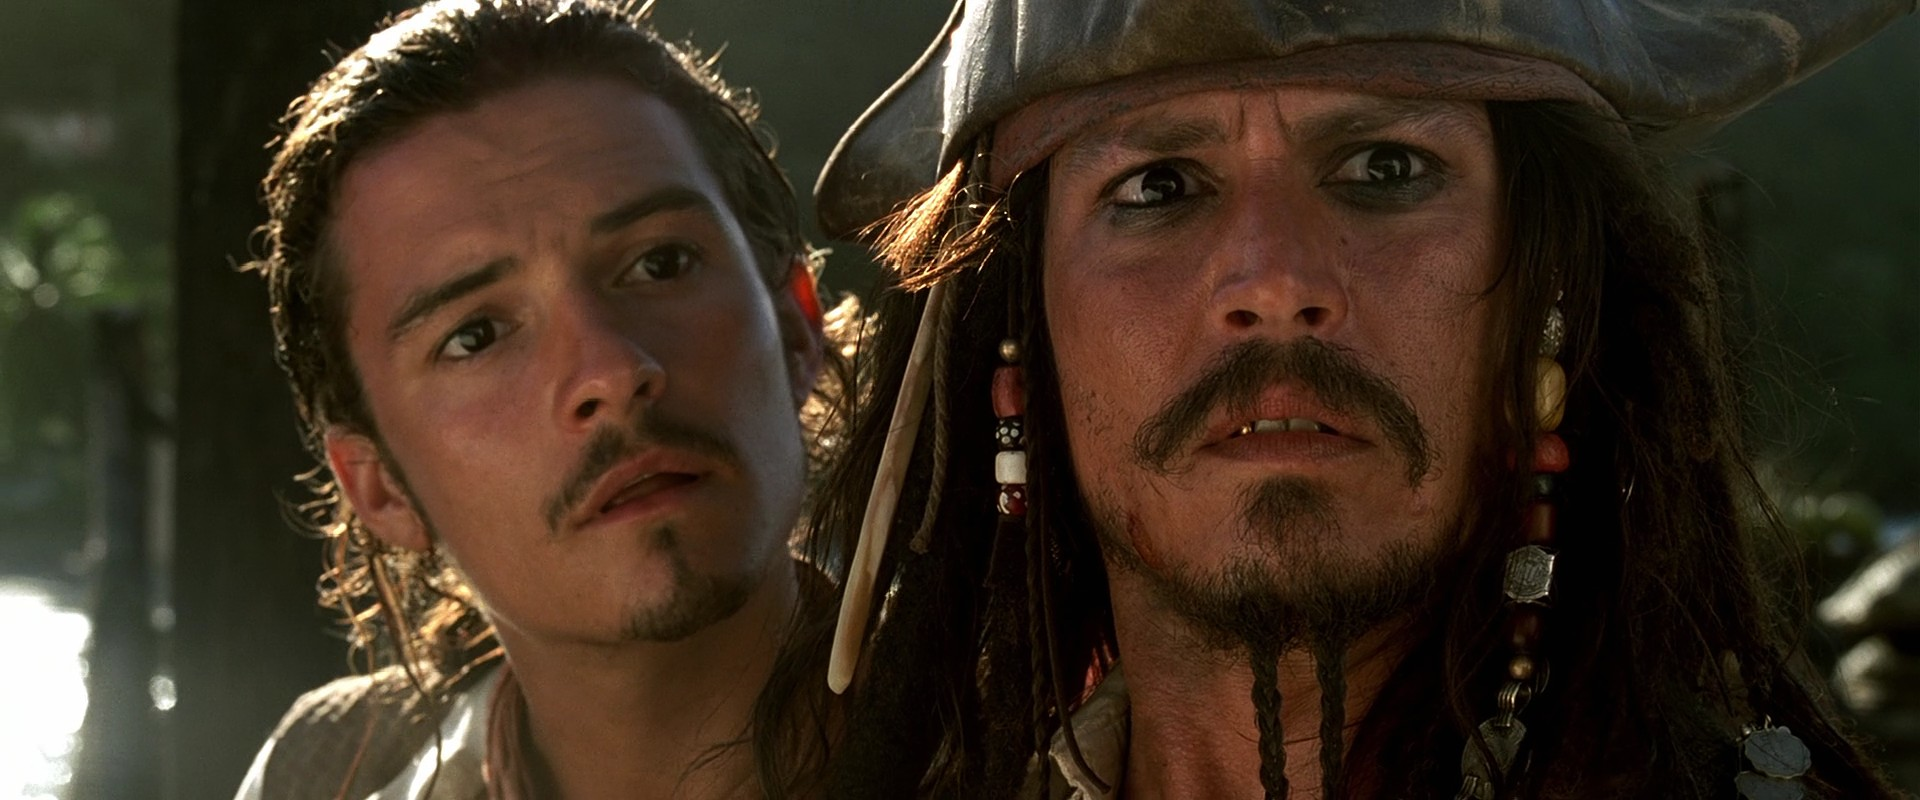 curse-of-the-black-pearl-pirates-of-the-caribbean-31445274-1920-800.jpg